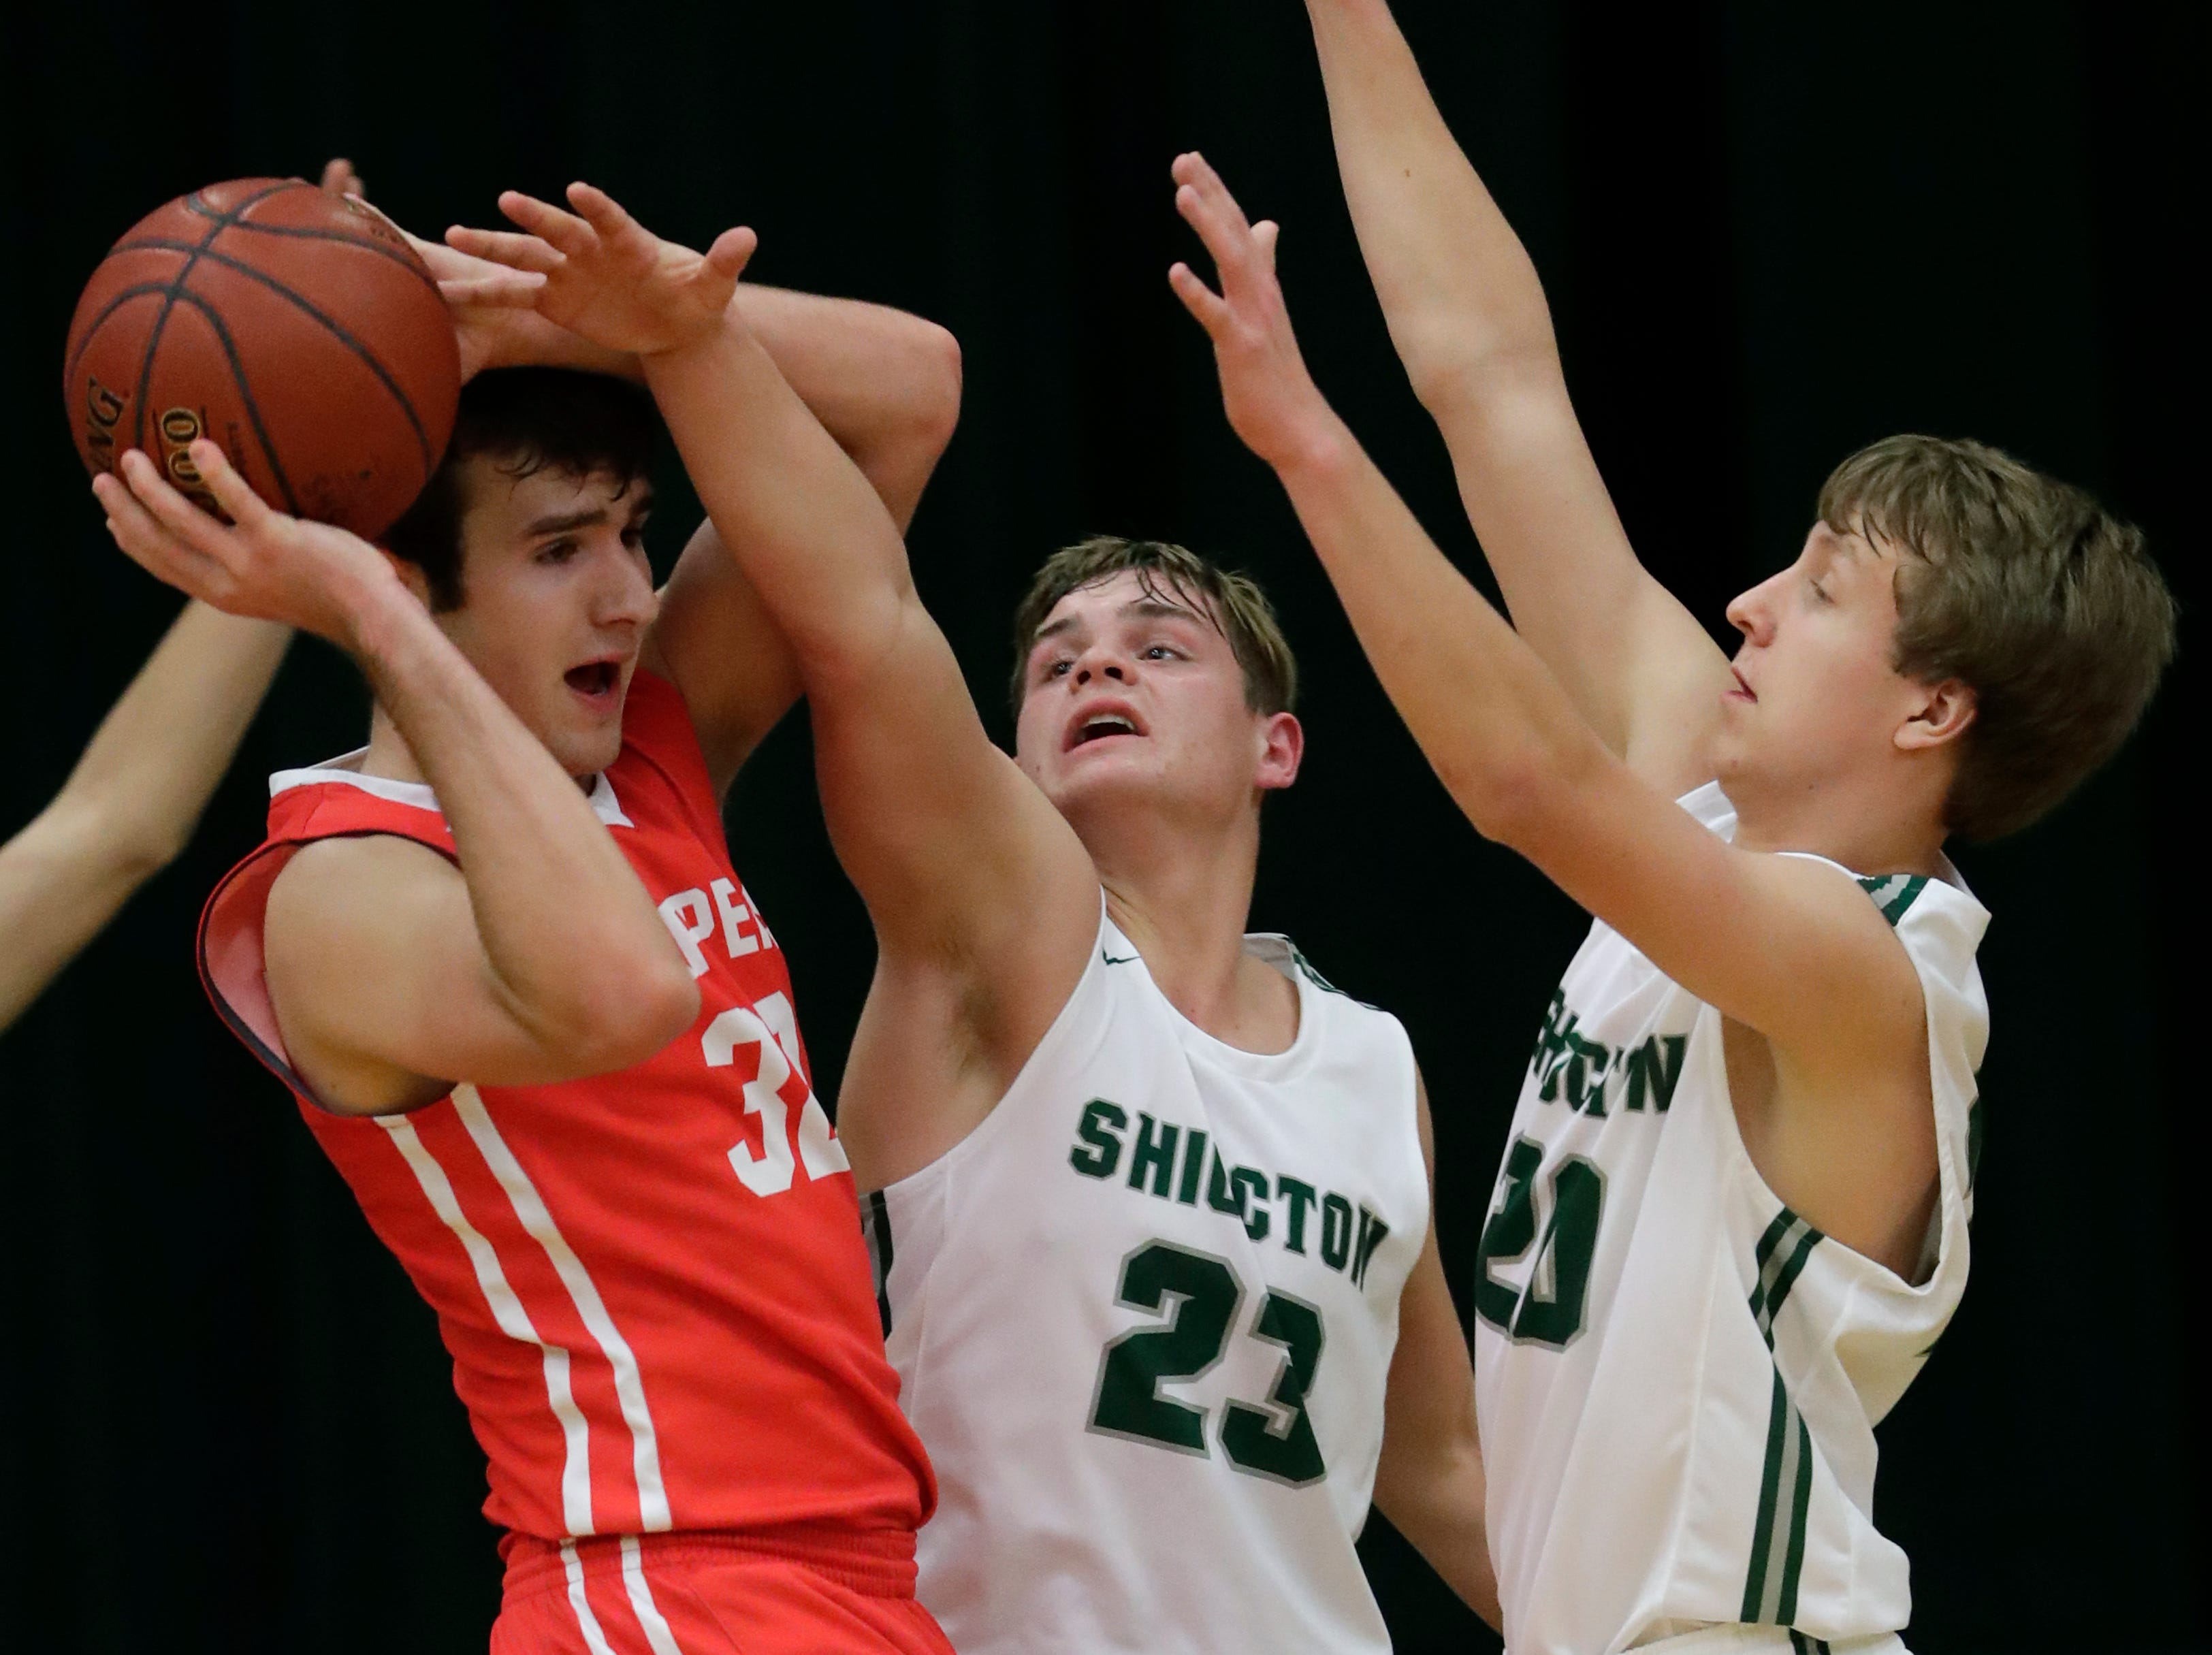 Sturgeon Bay High School's Carson Talbert (32) is under heavy pressure by Shiocton High School's Deven Bedor (23) and Caden Schmidt (20) during their boys basketball game Thursday, December 27, 2018, in Shiocton, Wis. 